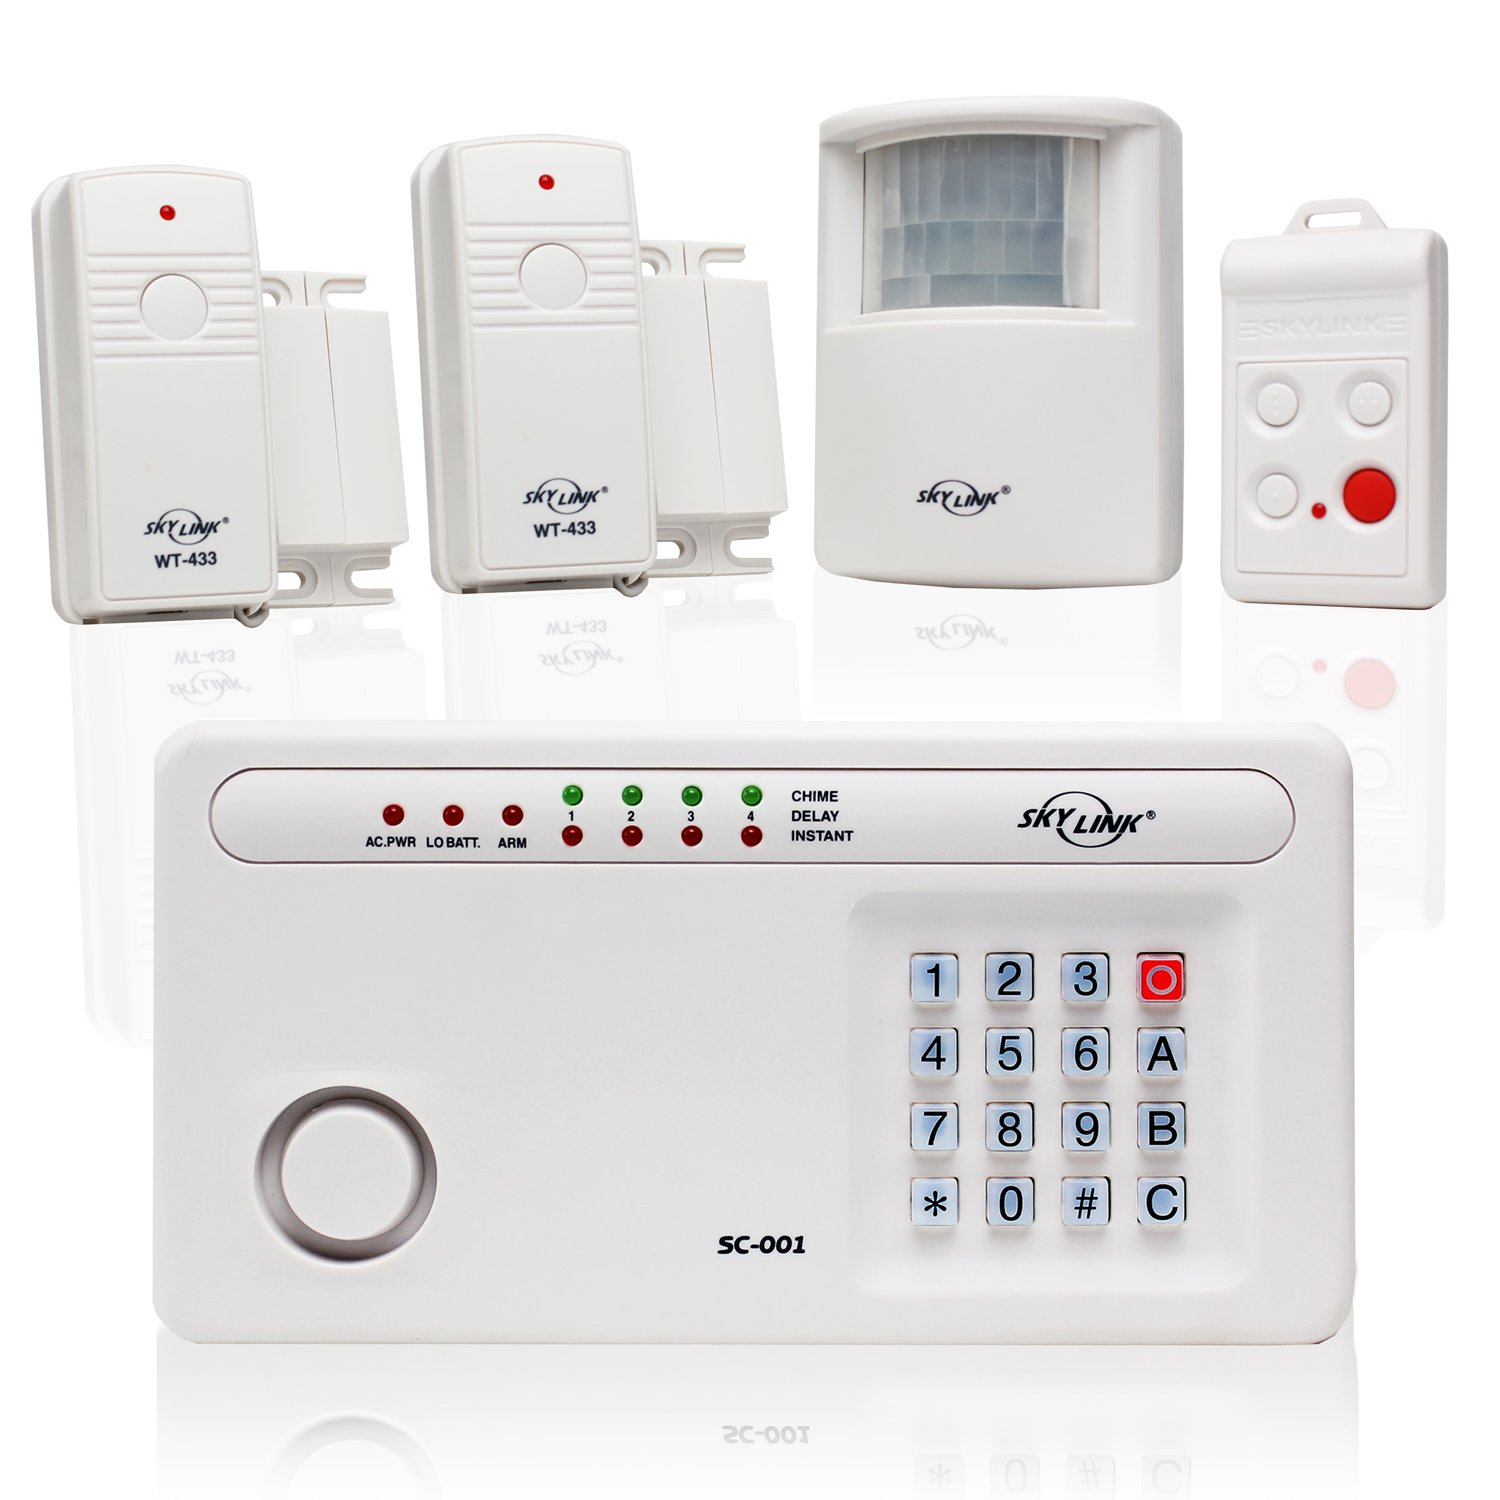 Skylink SC-100W Wireless Deluxe Home & Office Burglar Alarm System Alert Security Package | Affordable, Easy to Install DIY